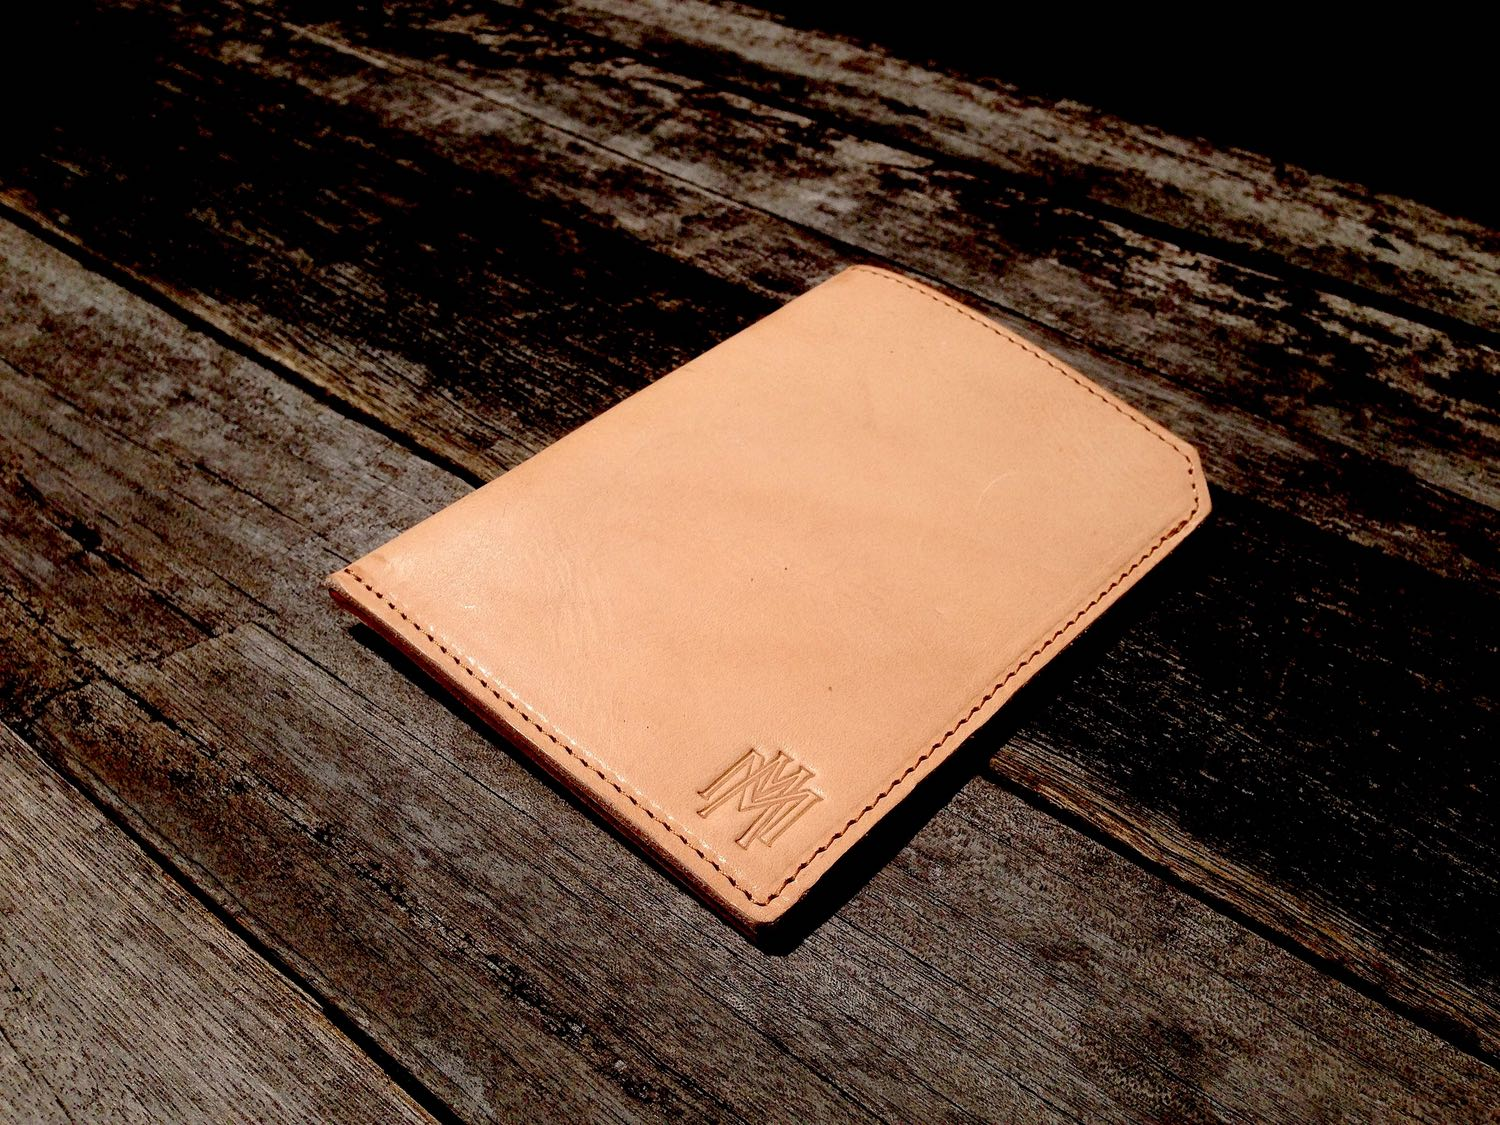 34life-corporate-events-workshops-gifts-products-designs-leather-monogram-personalise-gift-passport-01w.jpg